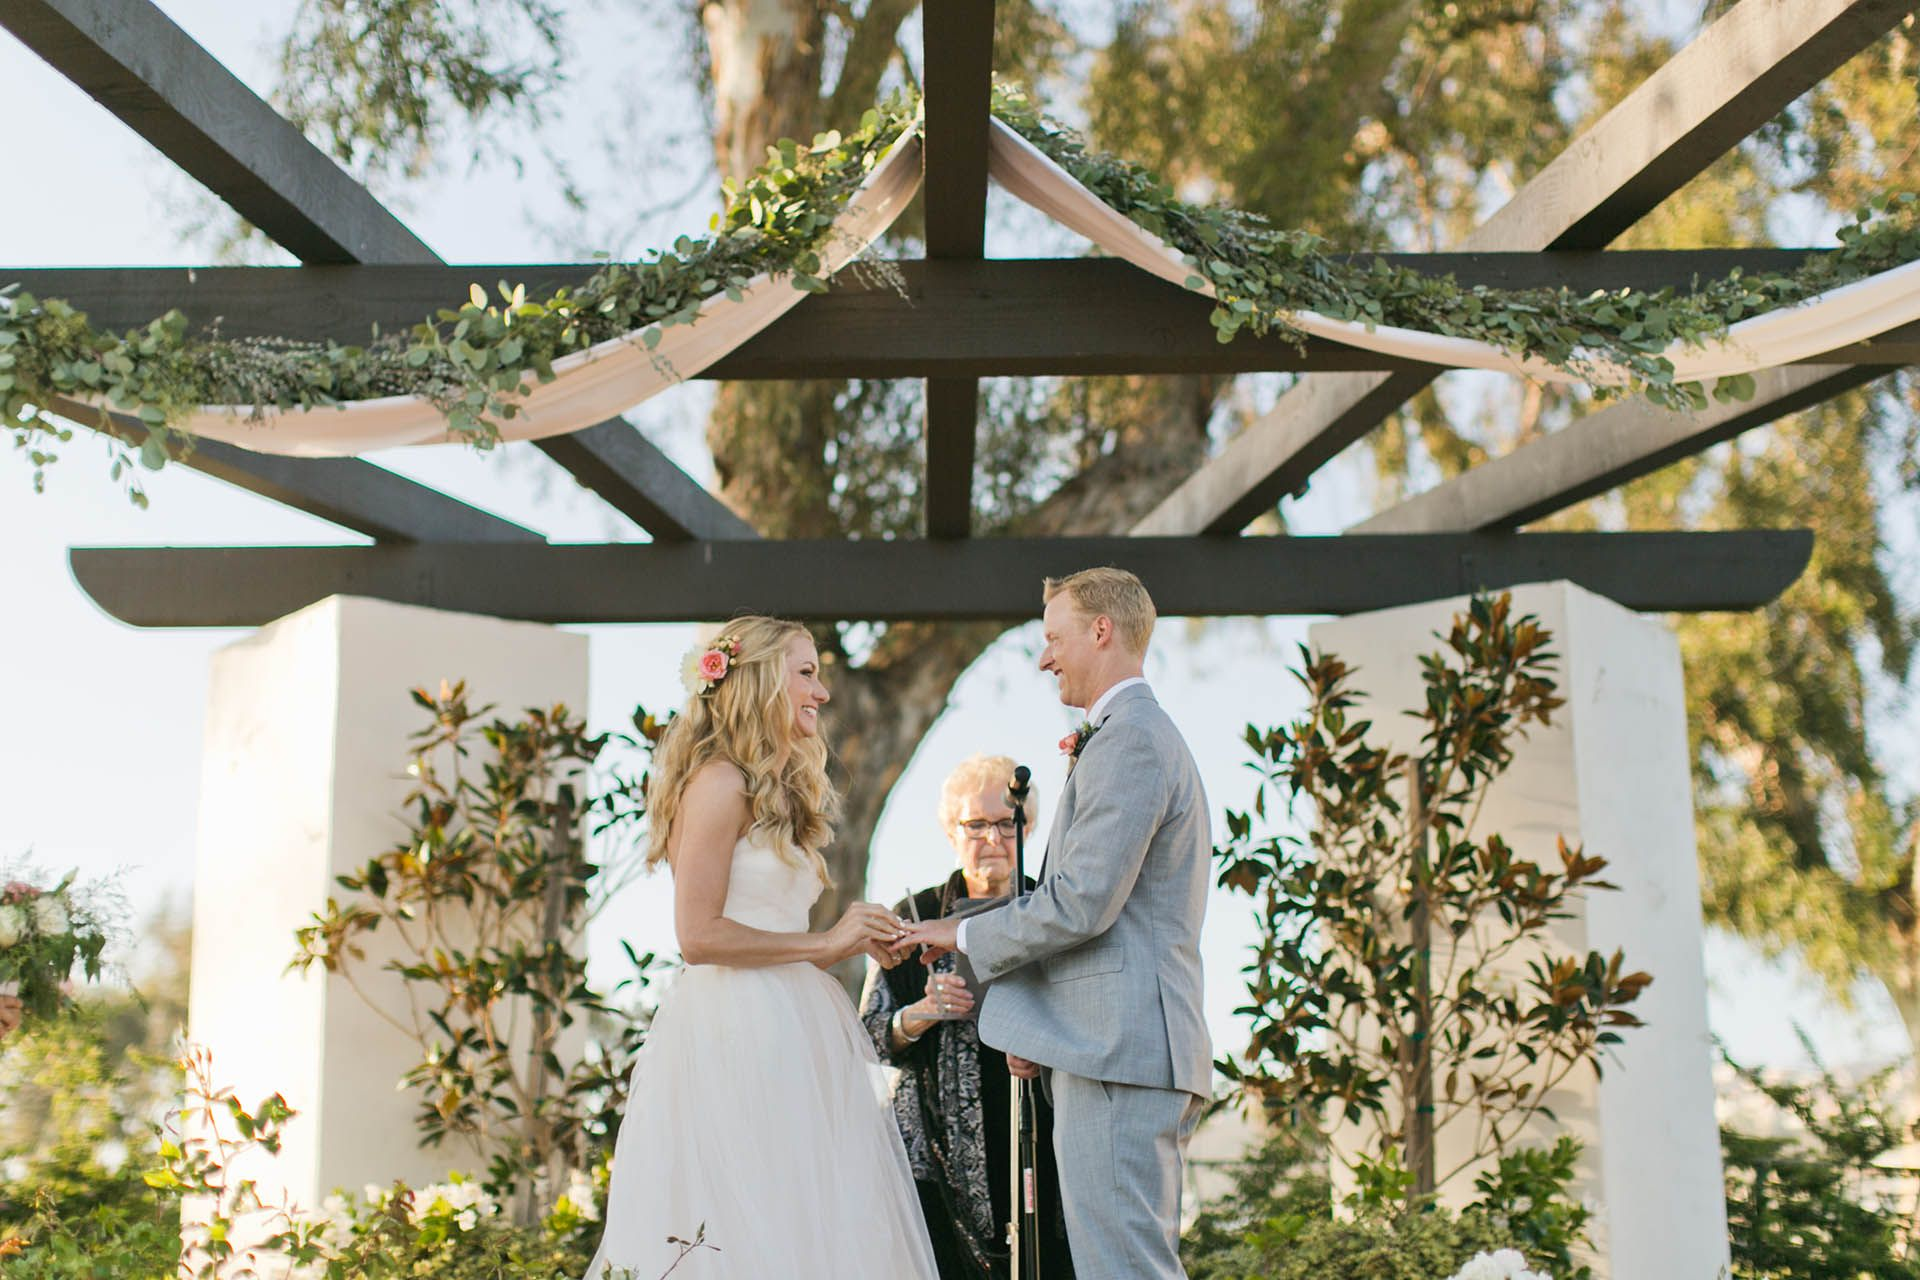 Wedgewood weddings, San clemente, ceremony outside and